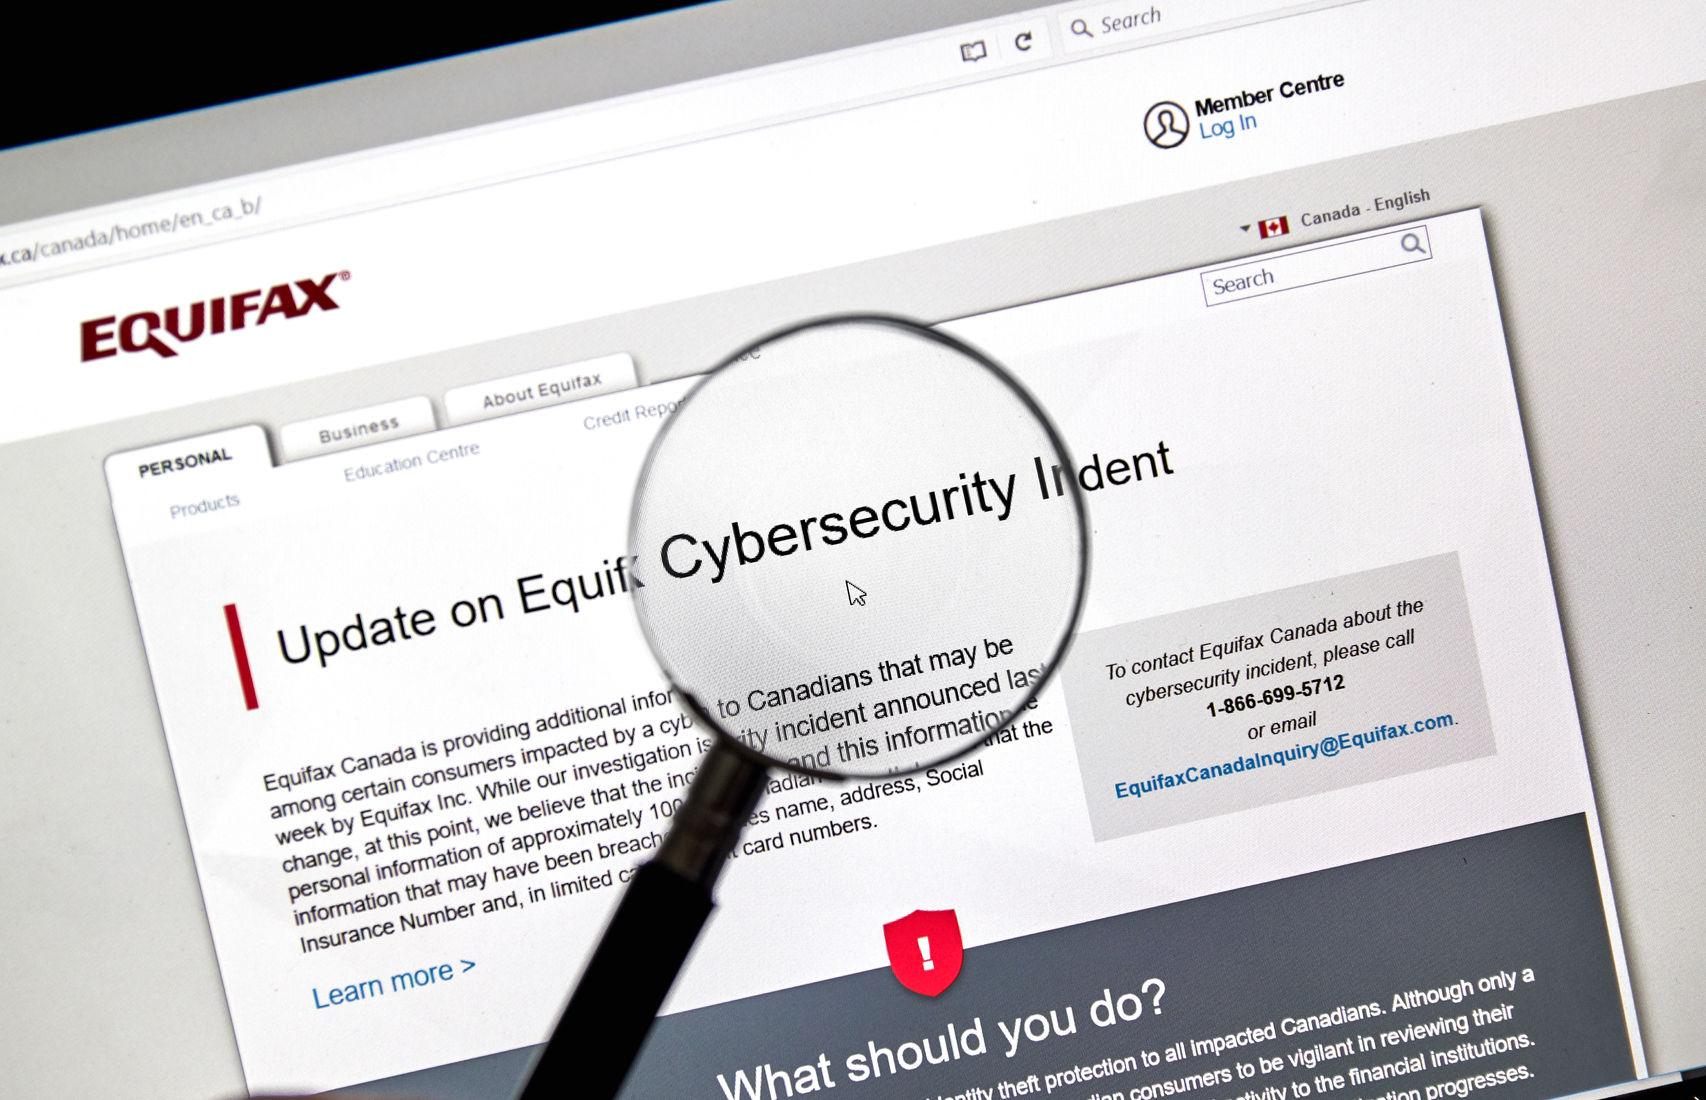 equifax claim form canada  New Revelations and Website Weirdness Push Equifax from Bad ...